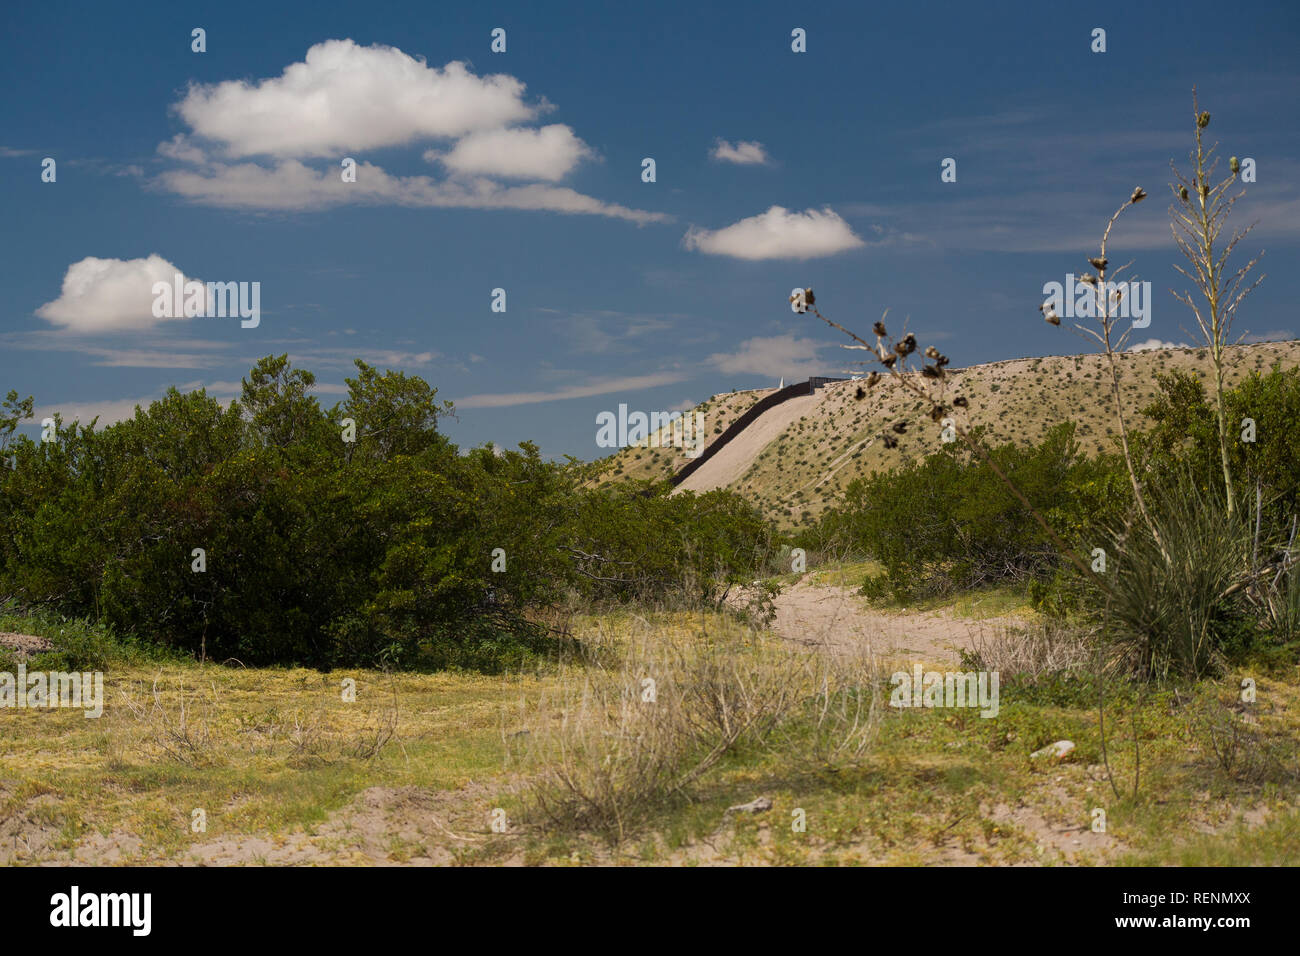 The US-Mexico Border Fence along a Steep Hill in Sunland Park, New Mexico near El Paso, Texas with Train Tracks in the Foreground Stock Photo